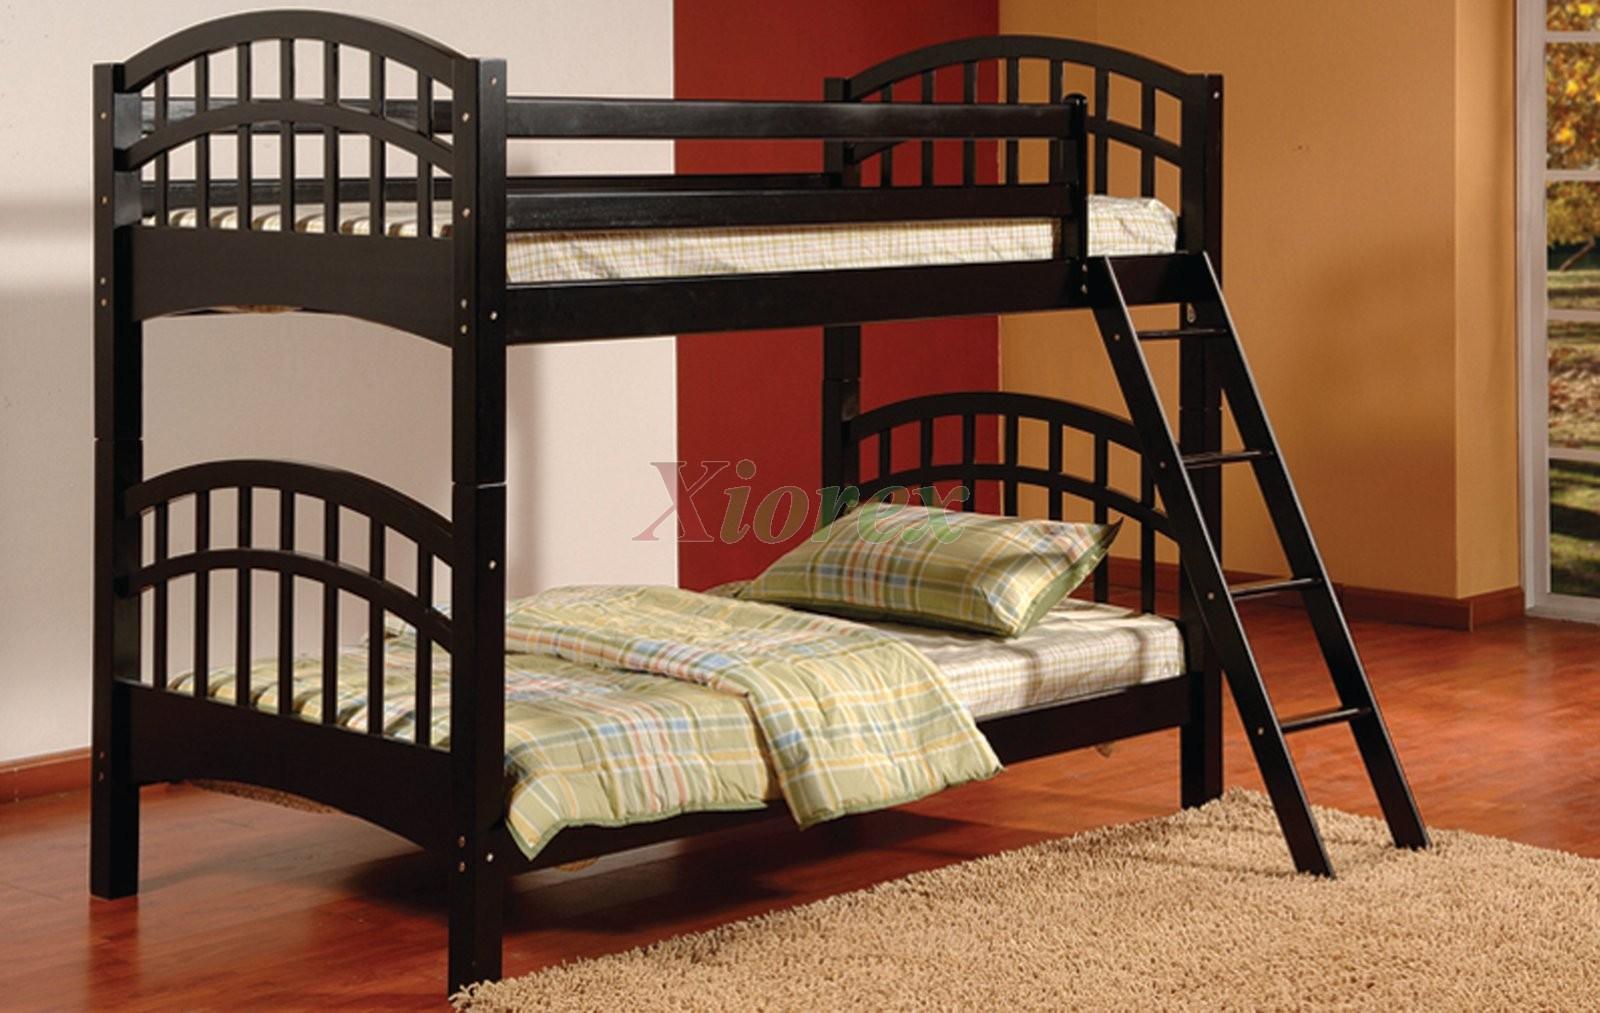 Achird twin twin kids bunk beds in black and white xiorex Black bunk beds